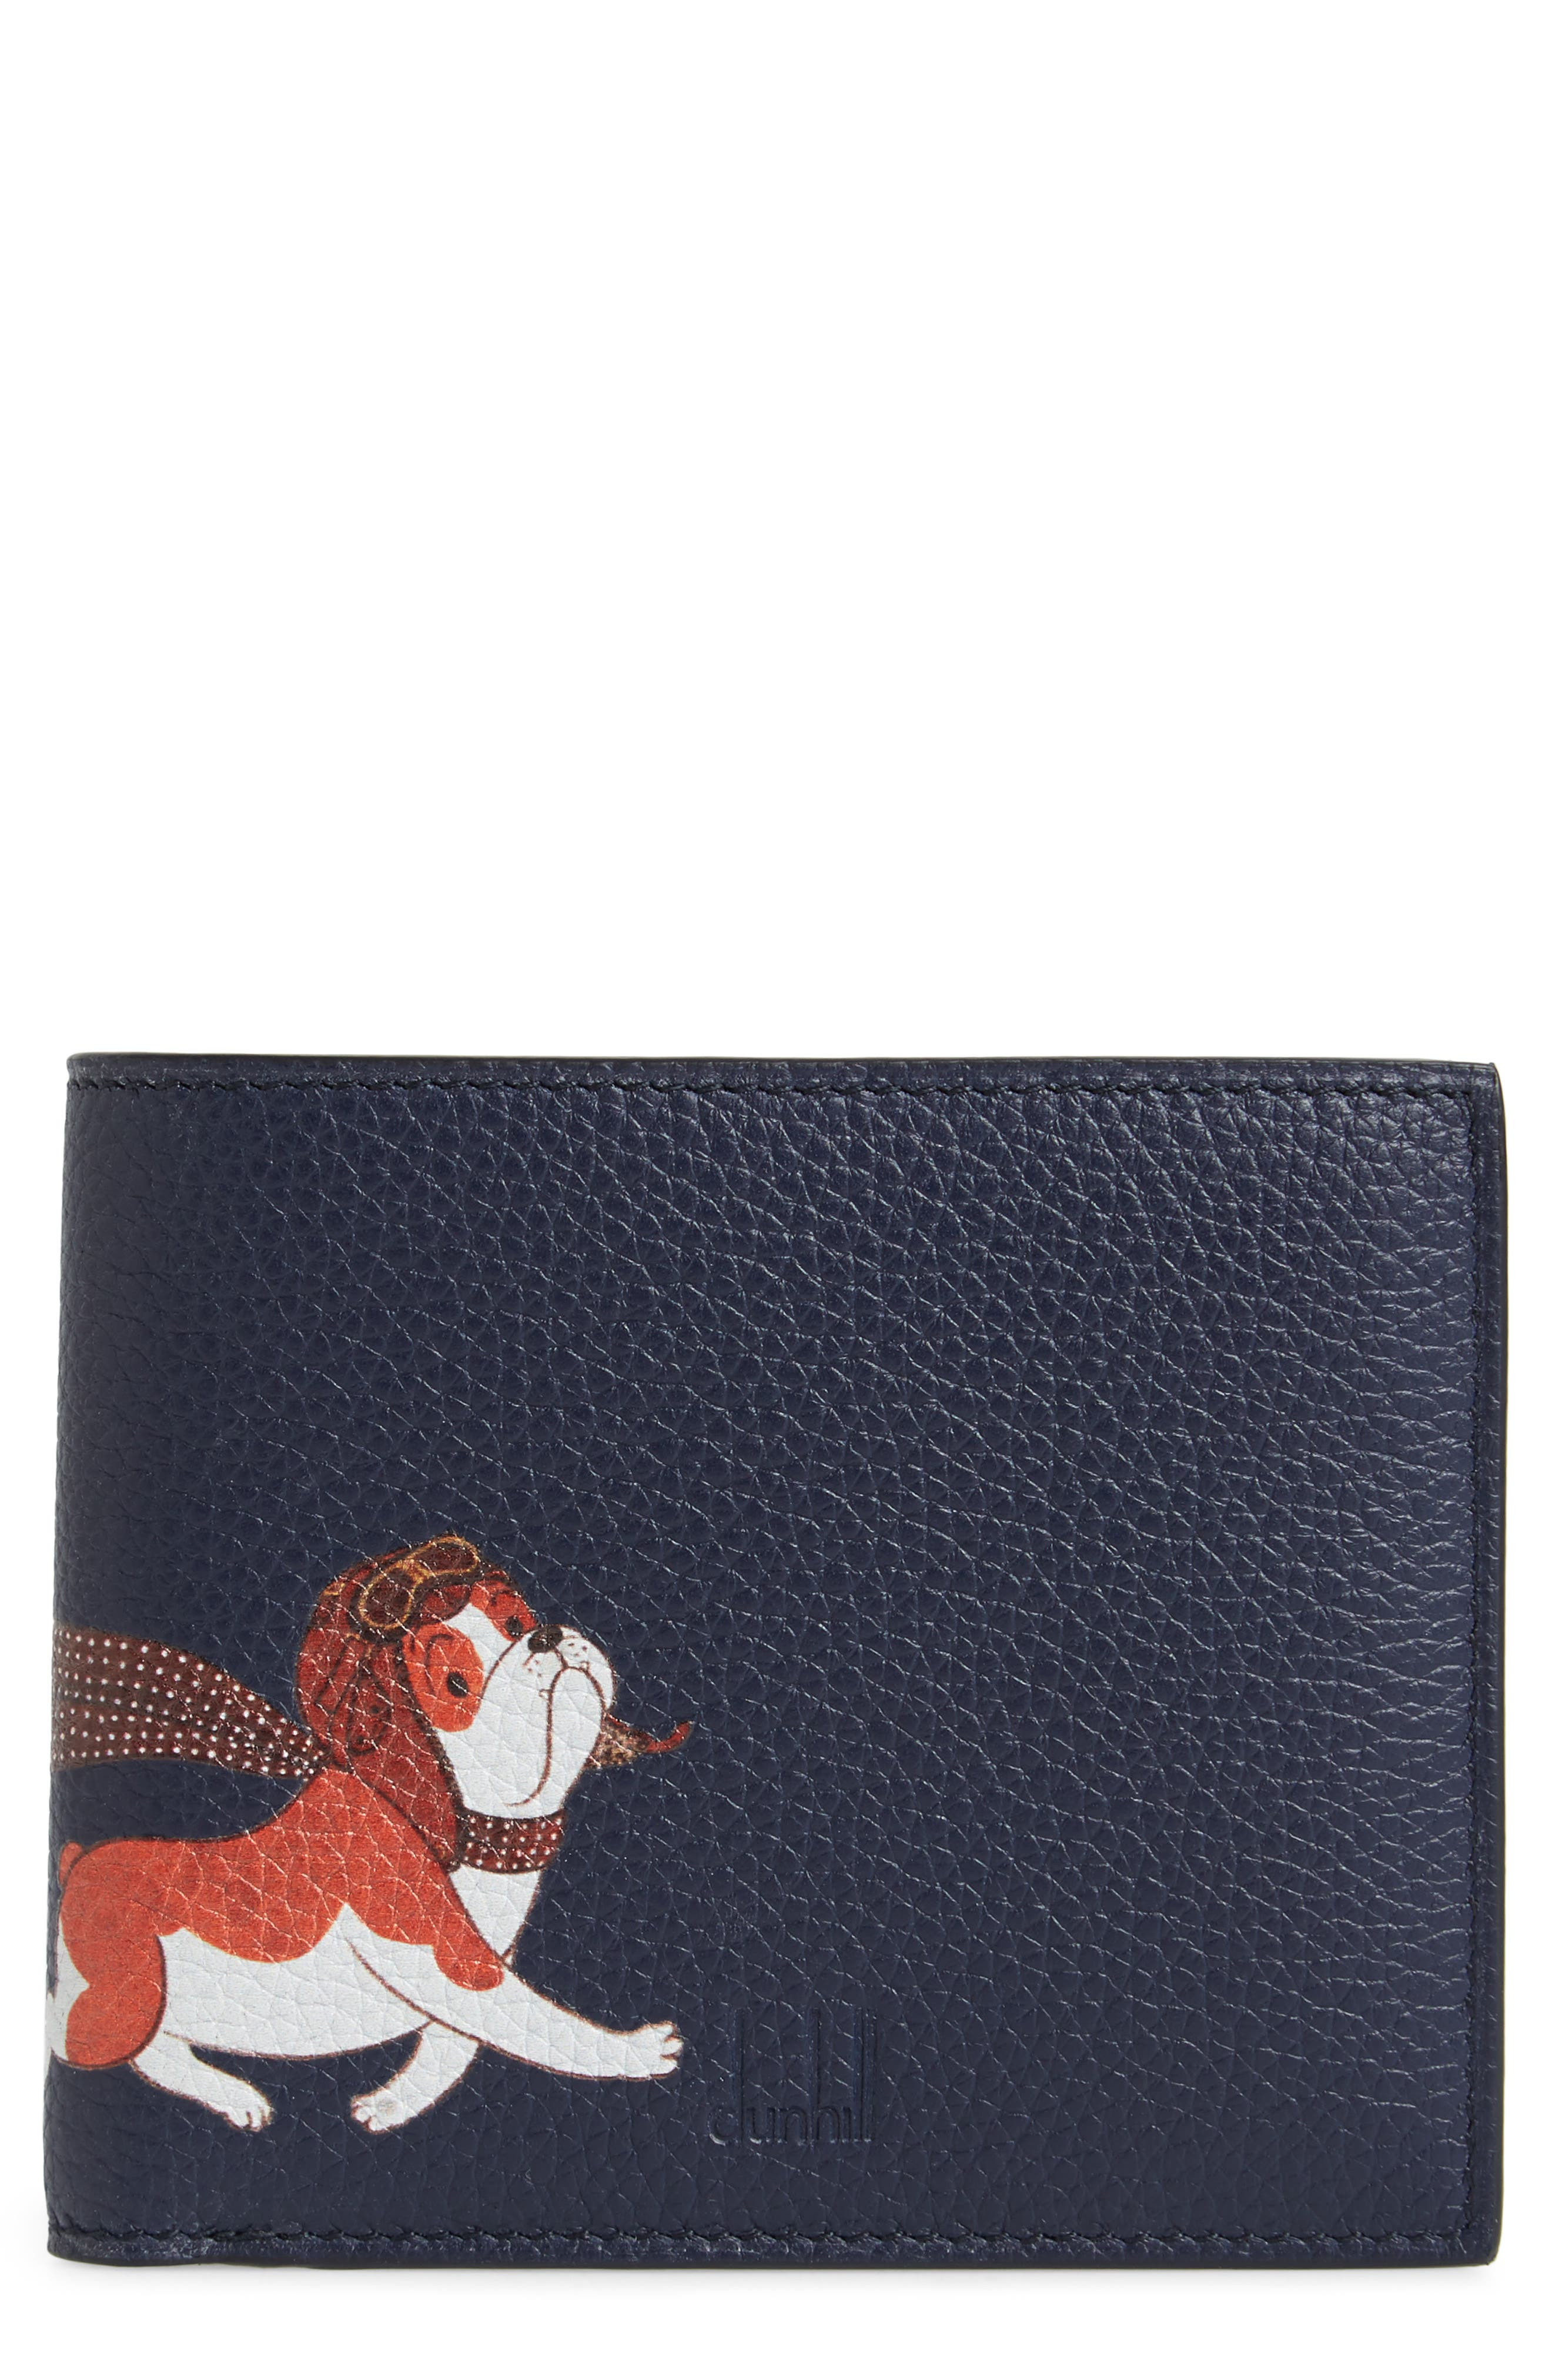 Boston Bulldog Leather Bifold Wallet,                         Main,                         color, Navy